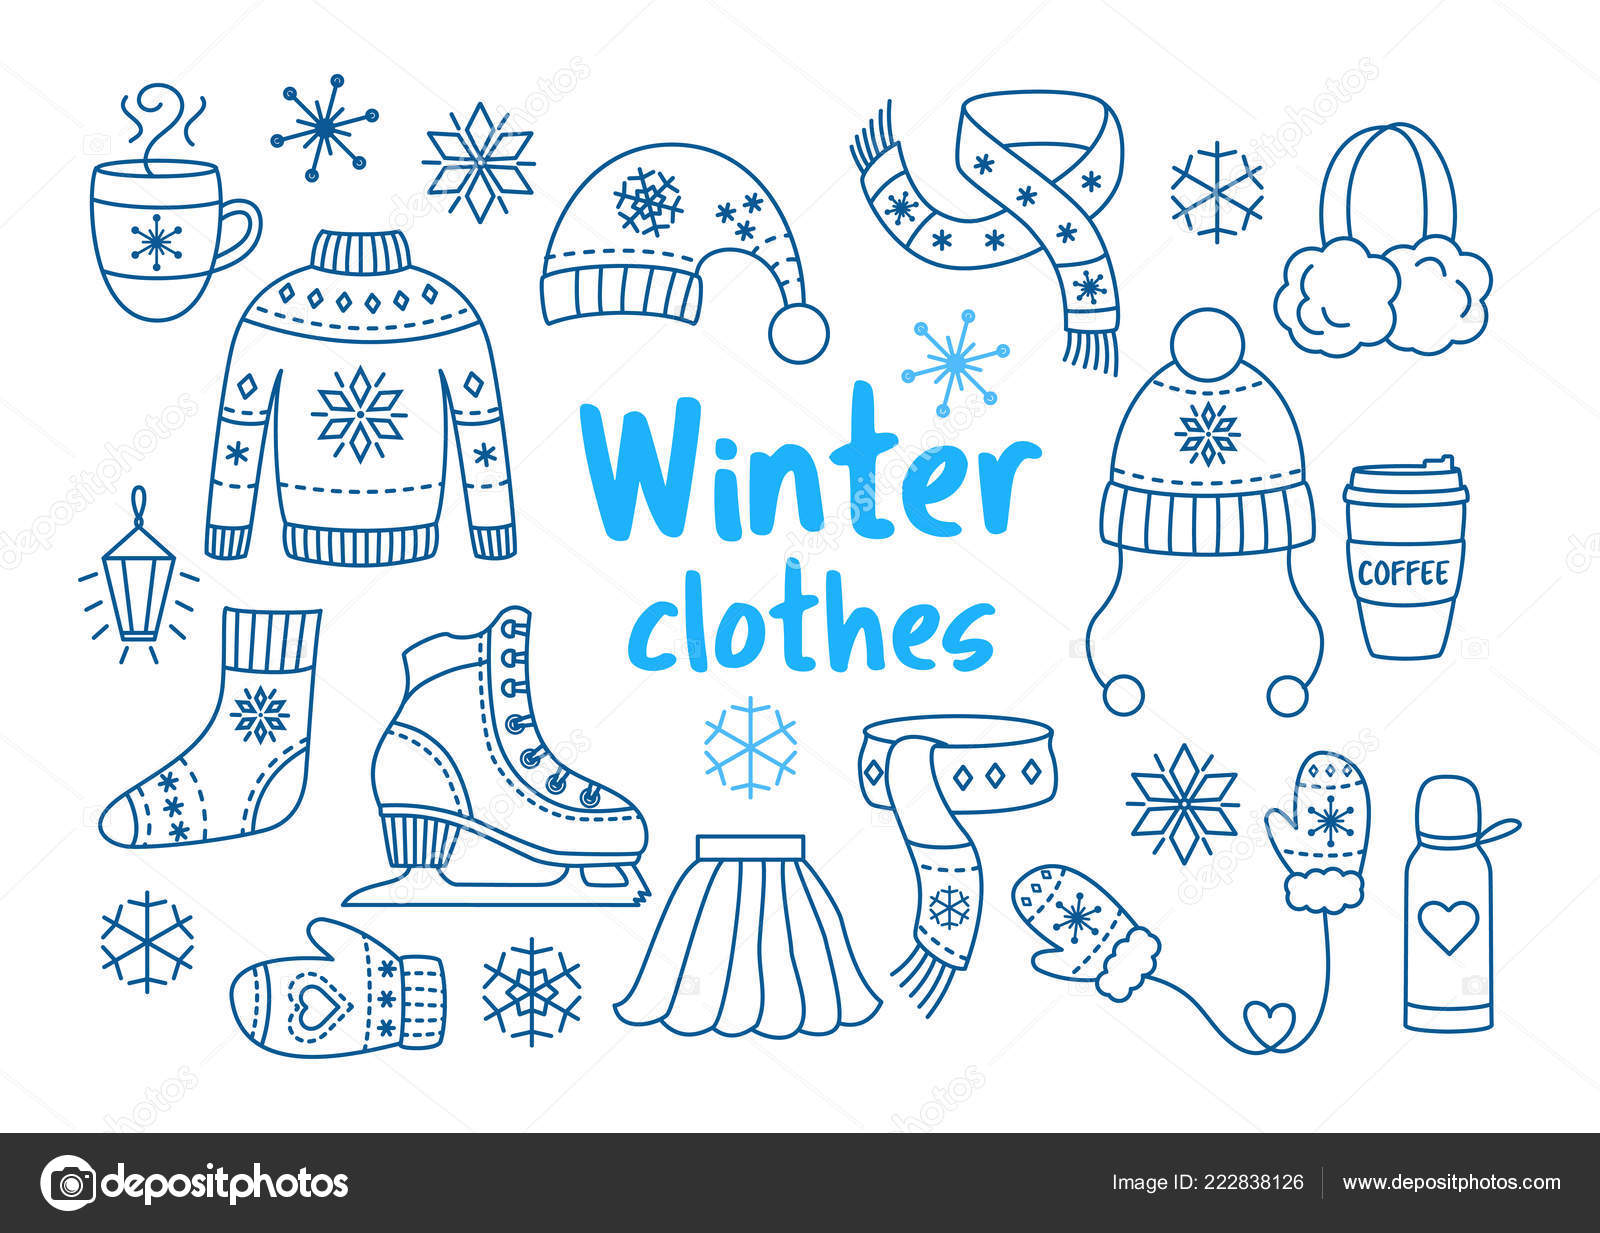 48f66bf6508f Winter clothes outline icon set — Stock Vector © DandelionFly  222838126